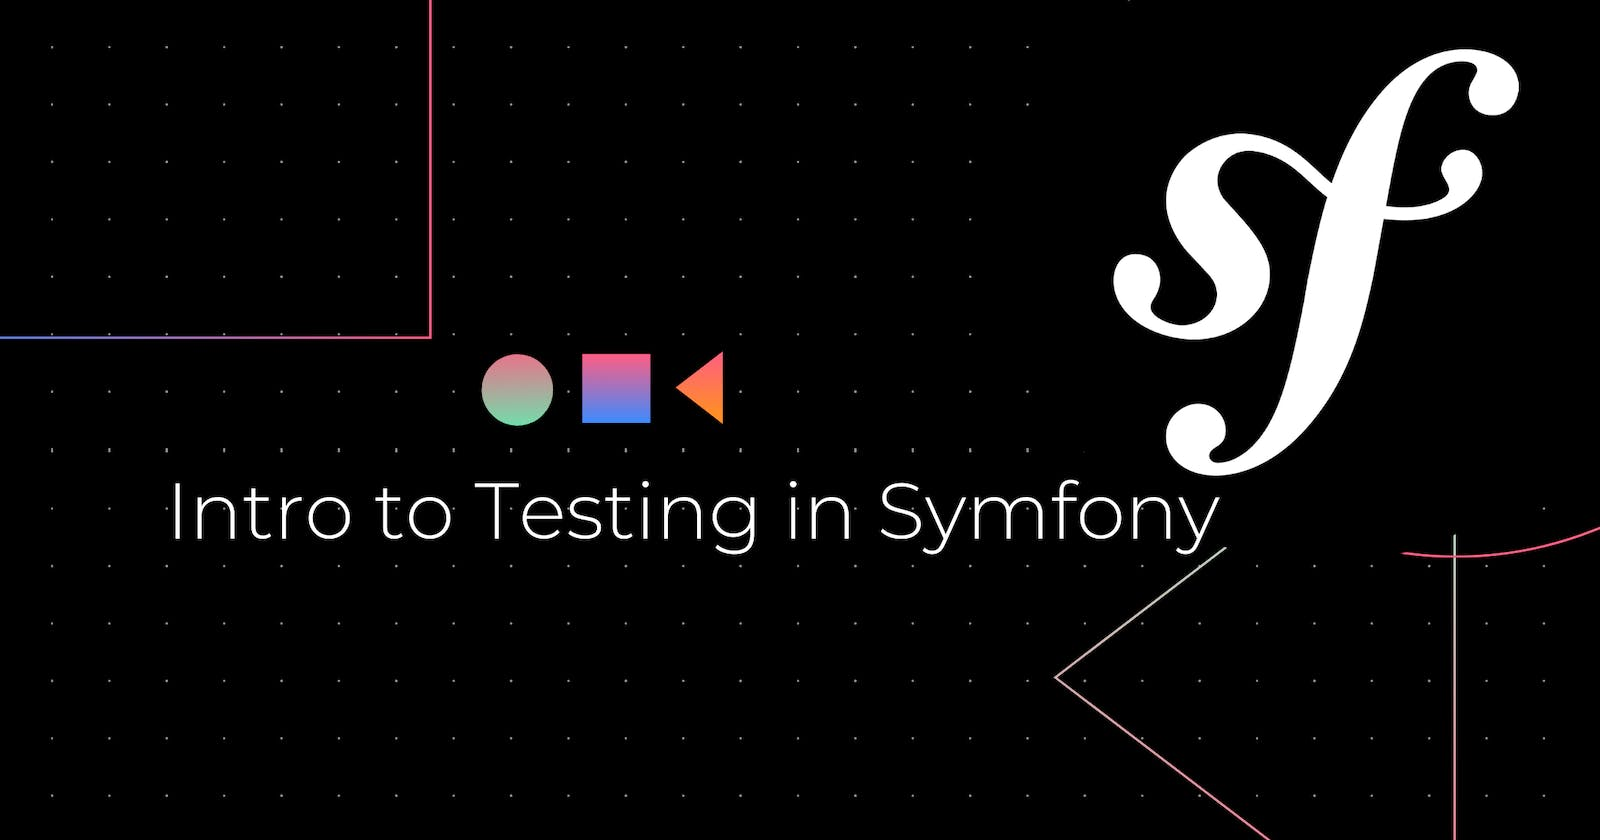 Unit Testing in a Symfony Project